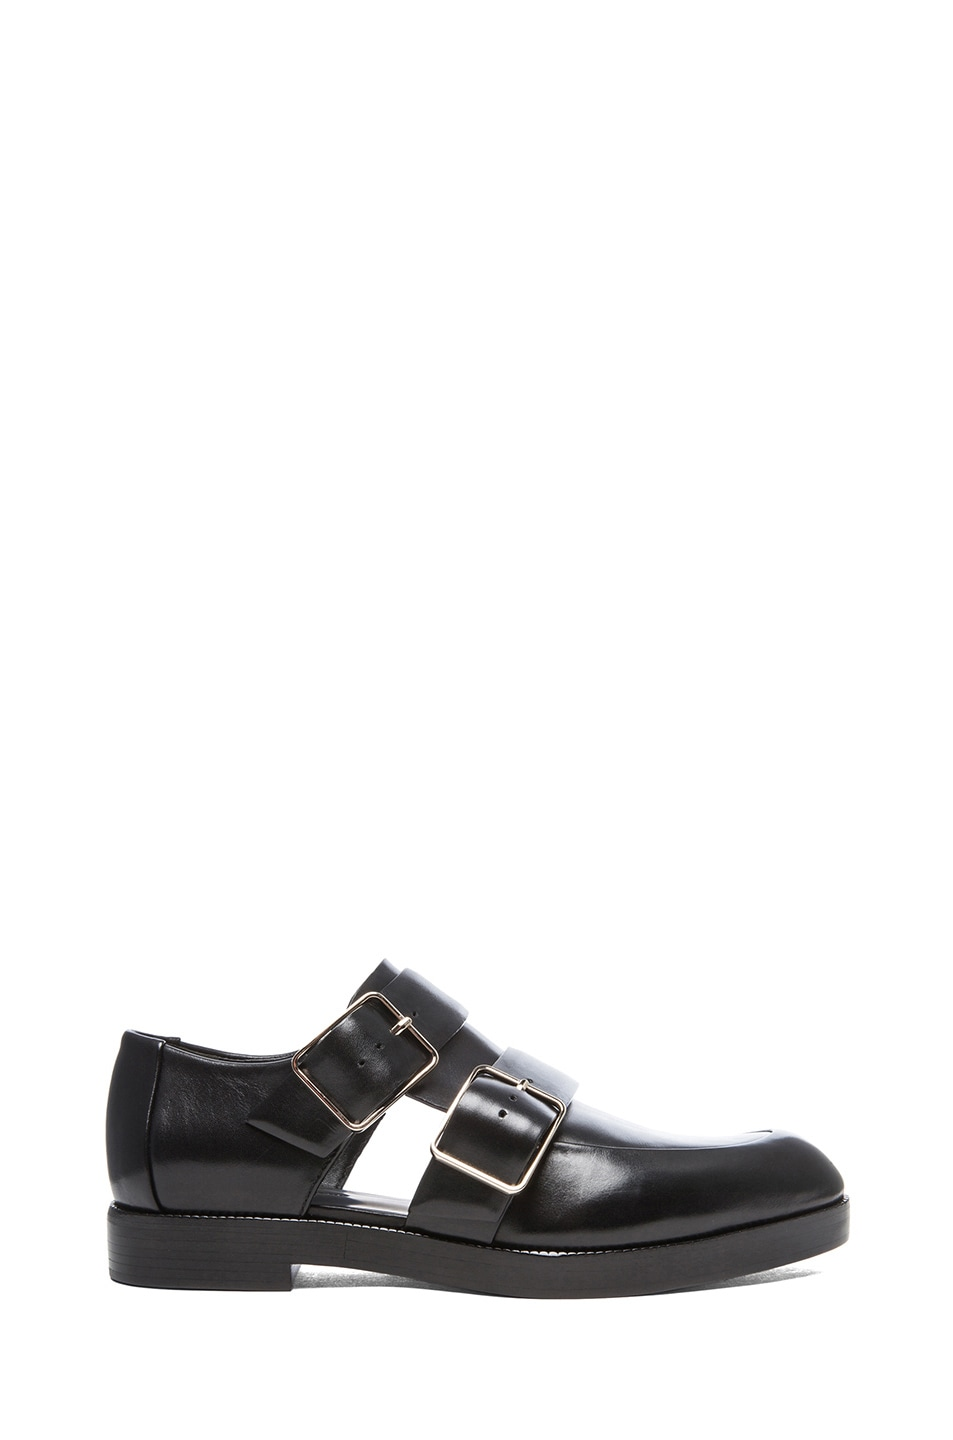 Image 1 of Alexander Wang Jacquetta Leather Monk Strap Oxfords in Black